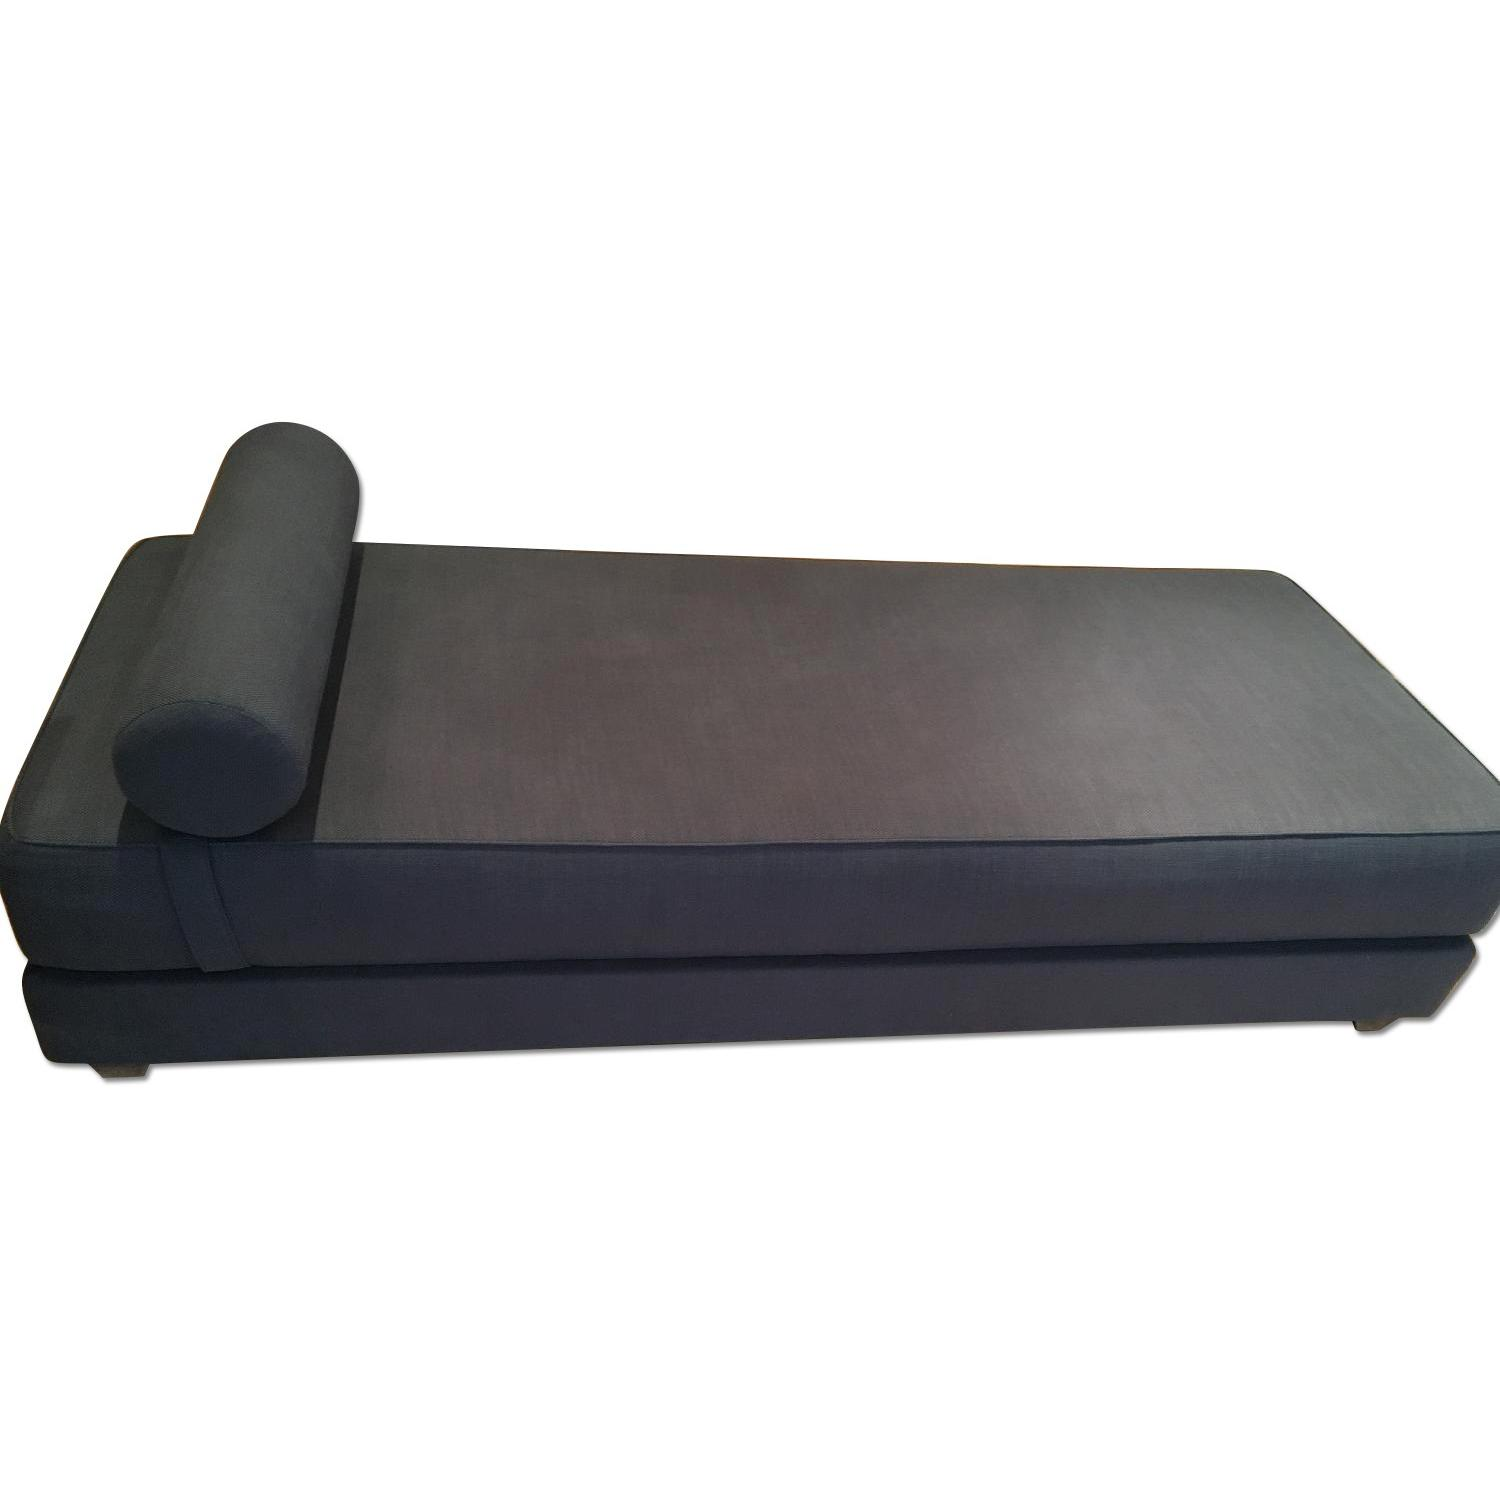 CB2 Lubi Sleeper Daybed - image-0